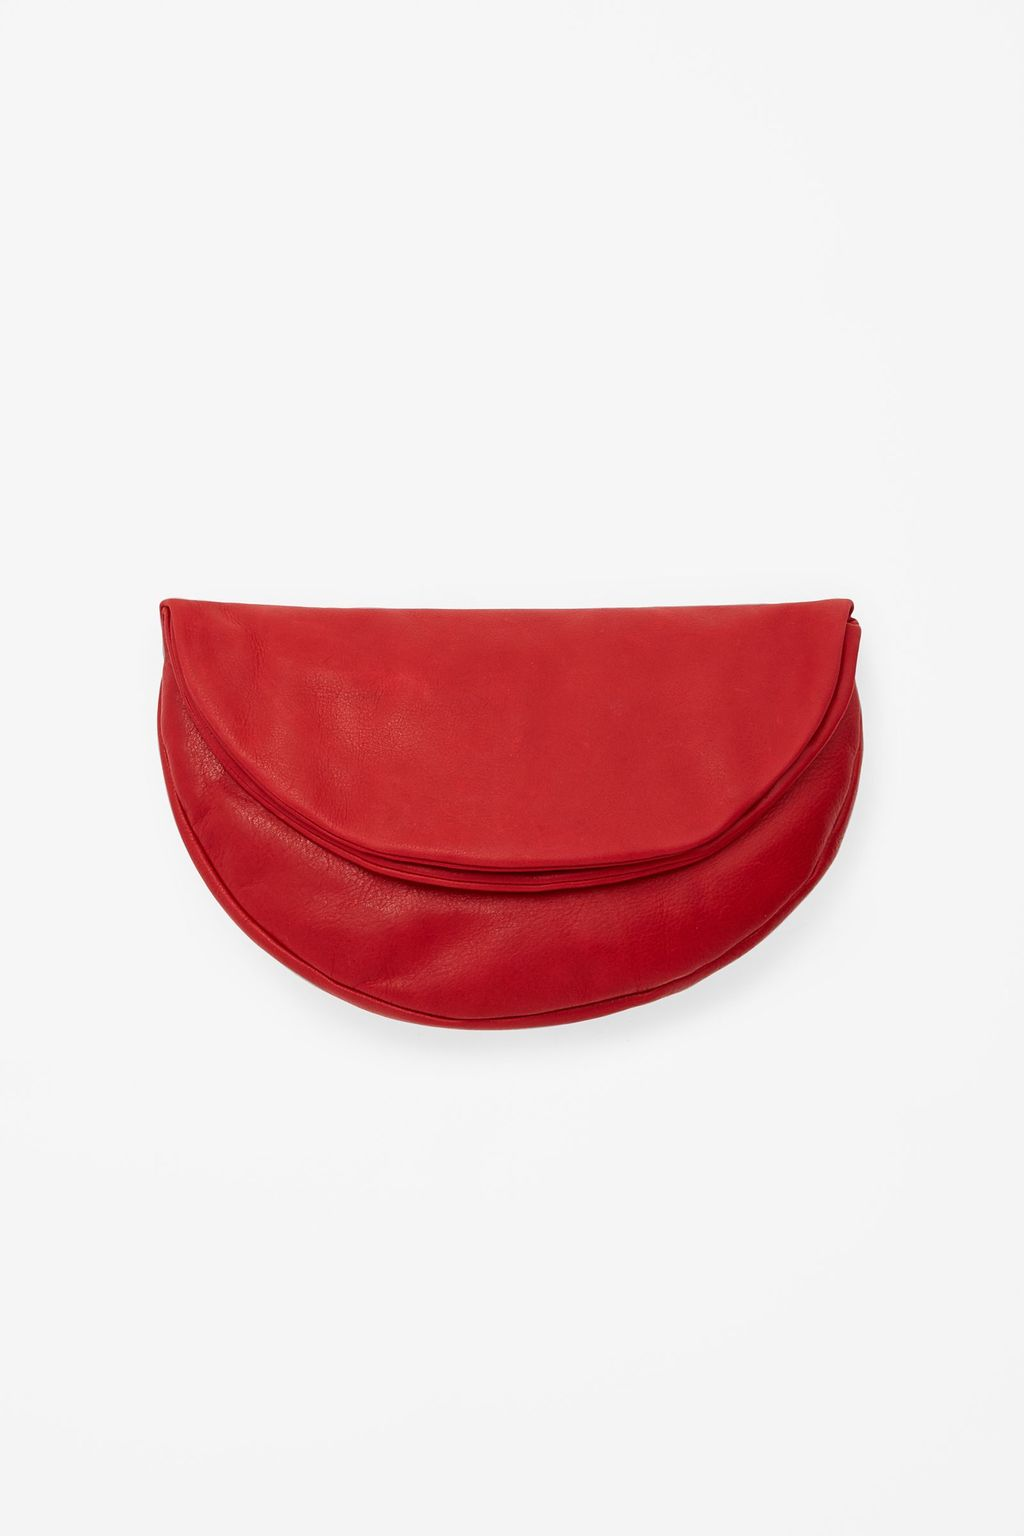 Foldover Circle Clutch - occasions: evening, occasion; style: clutch; length: hand carry; size: standard; material: leather; pattern: plain; finish: plain; predominant colour: raspberry; season: s/s 2015; wardrobe: event